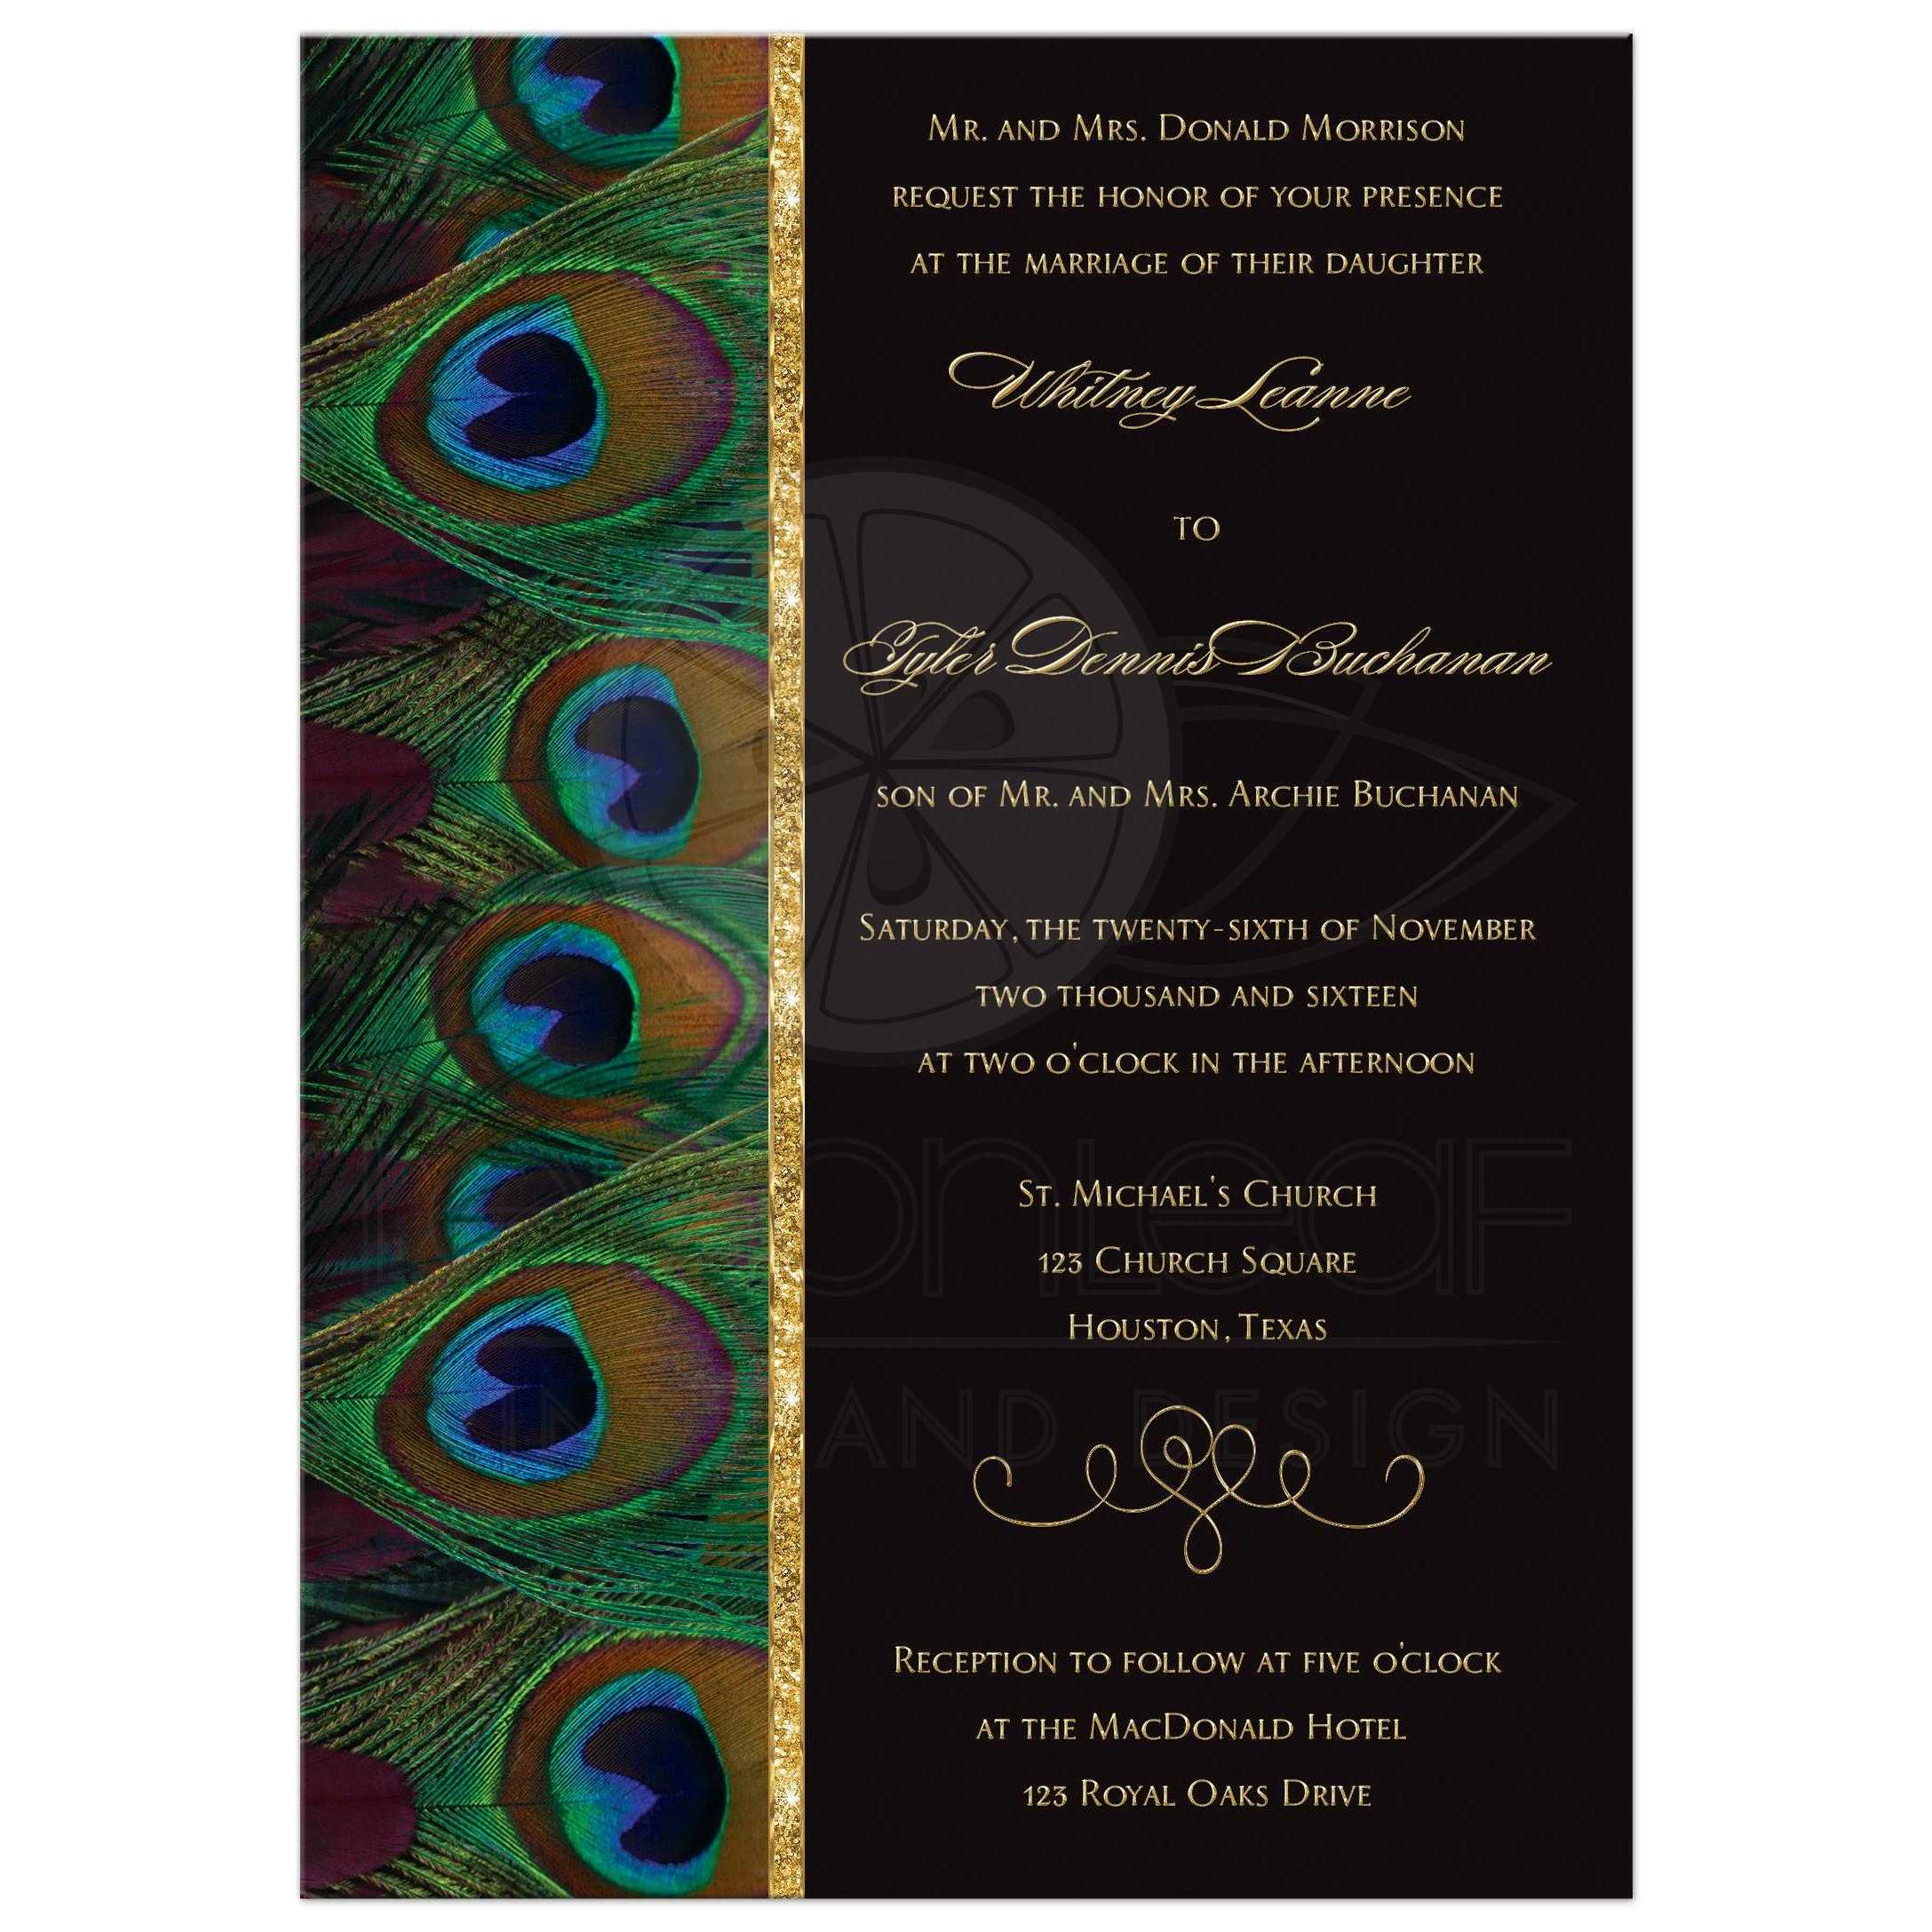 Painted Couple Peacock Wedding Gifts Unique Delicate Home: Wedding Invitation